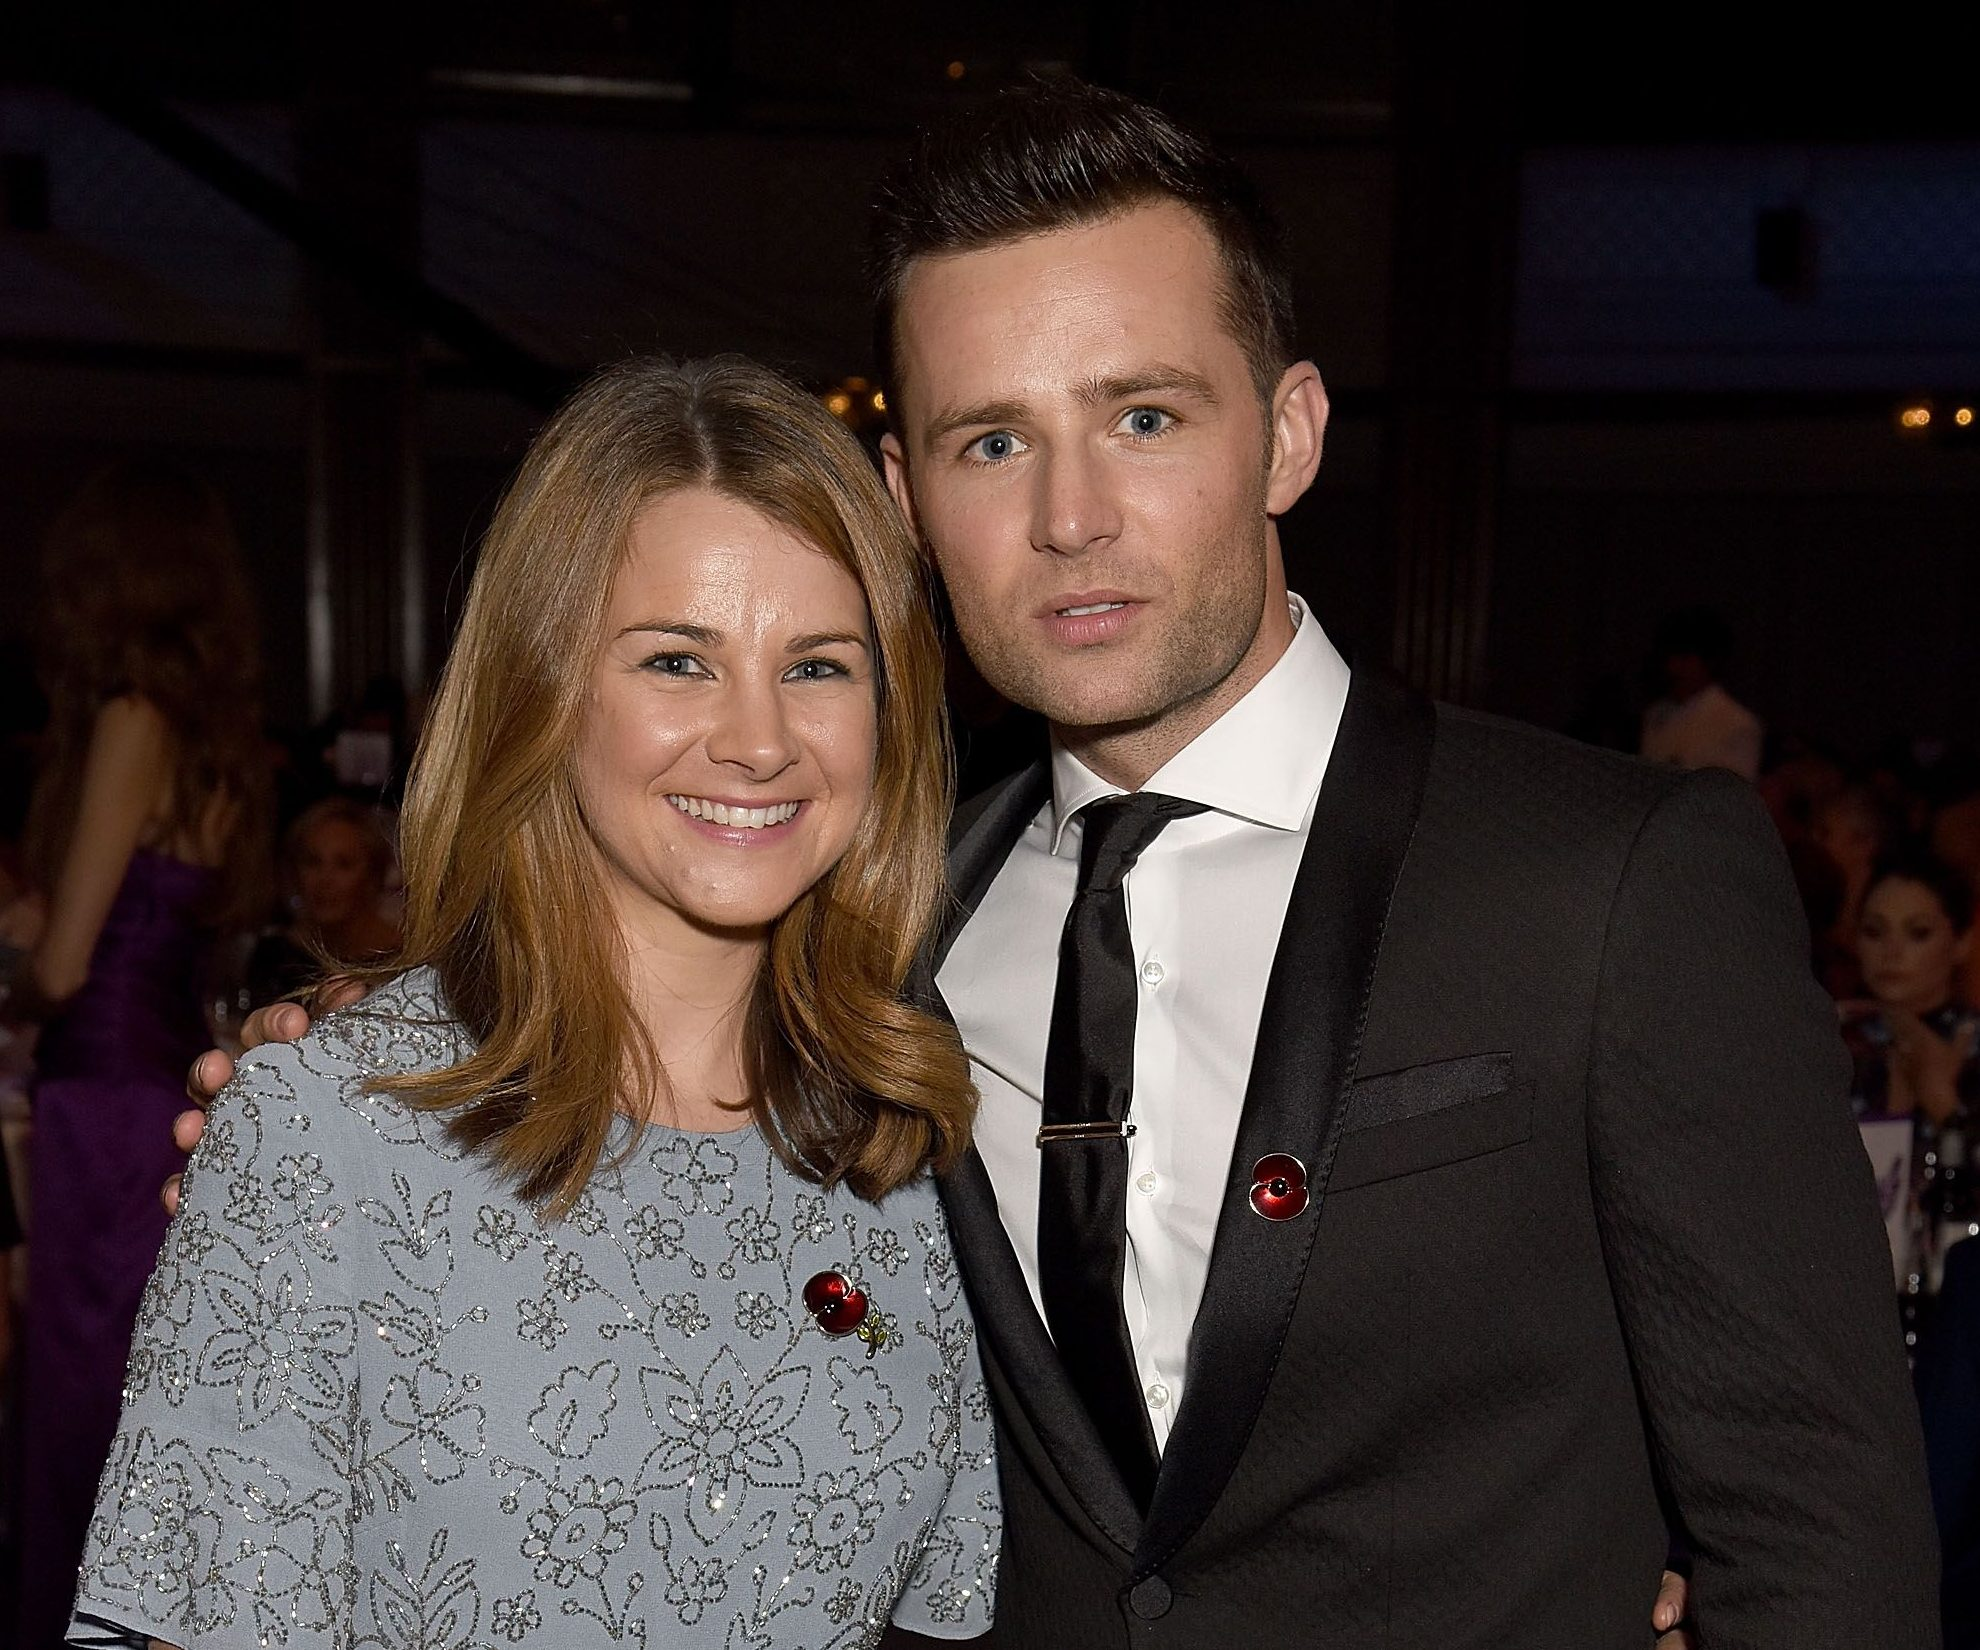 Harry Judd not ready to have more children with wife Izzy: 'It's quite full on having two kids'